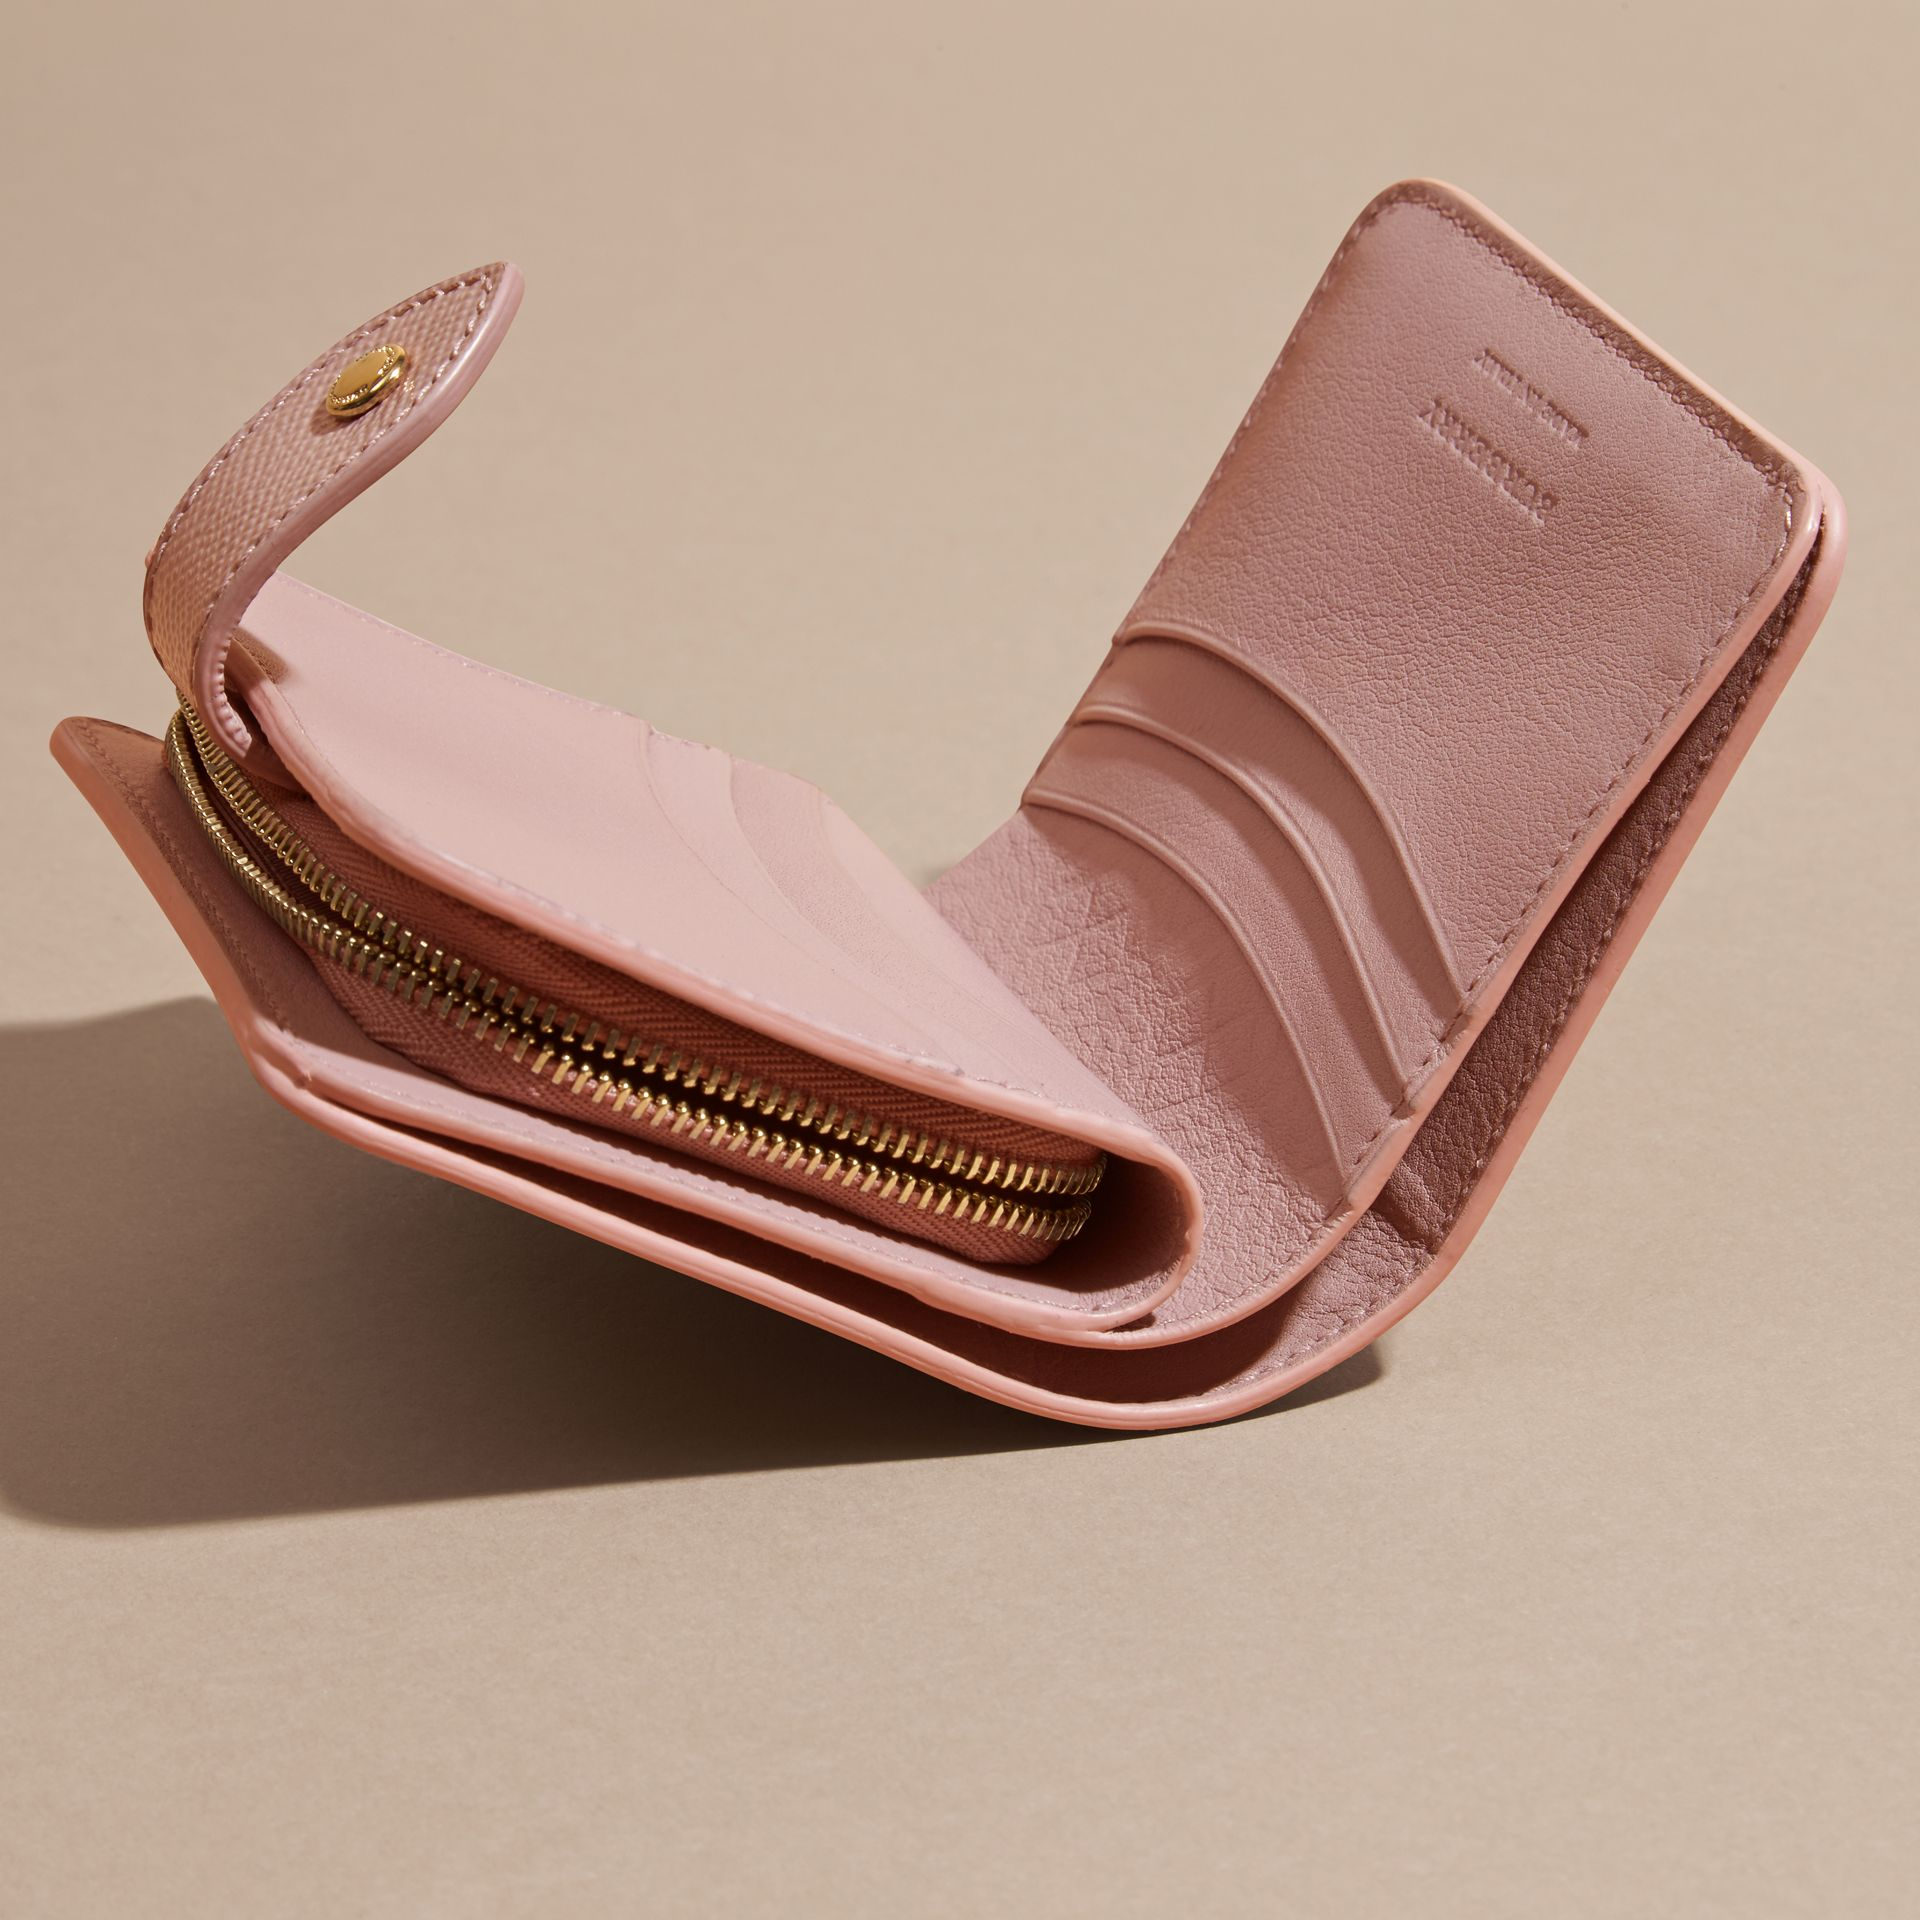 Patent London Leather Wallet in Ash Rose - gallery image 5